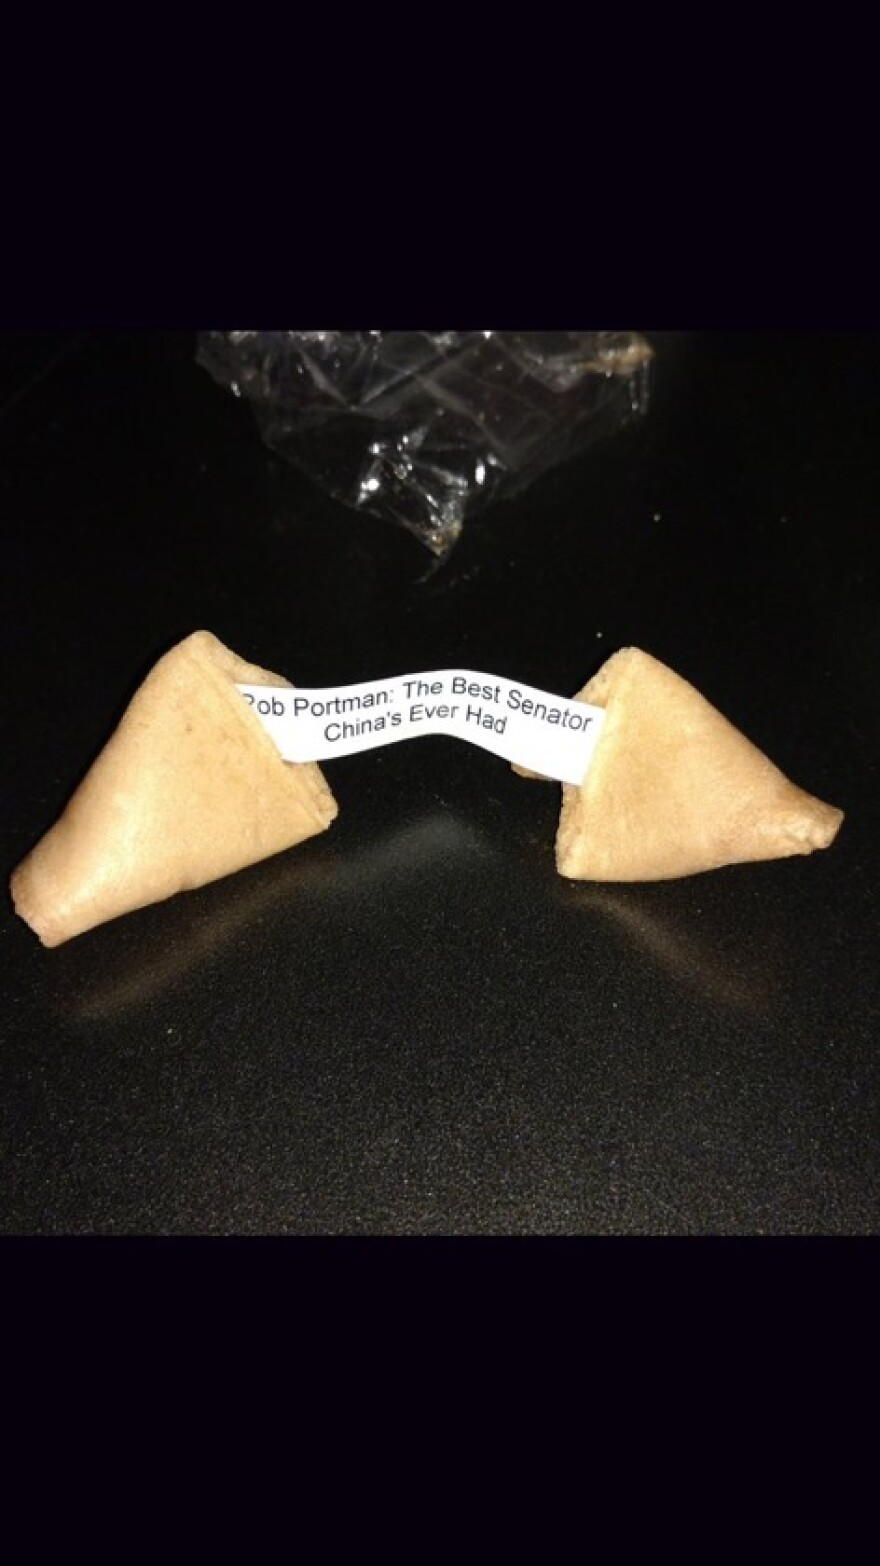 photo of Strickland's fortune cookie